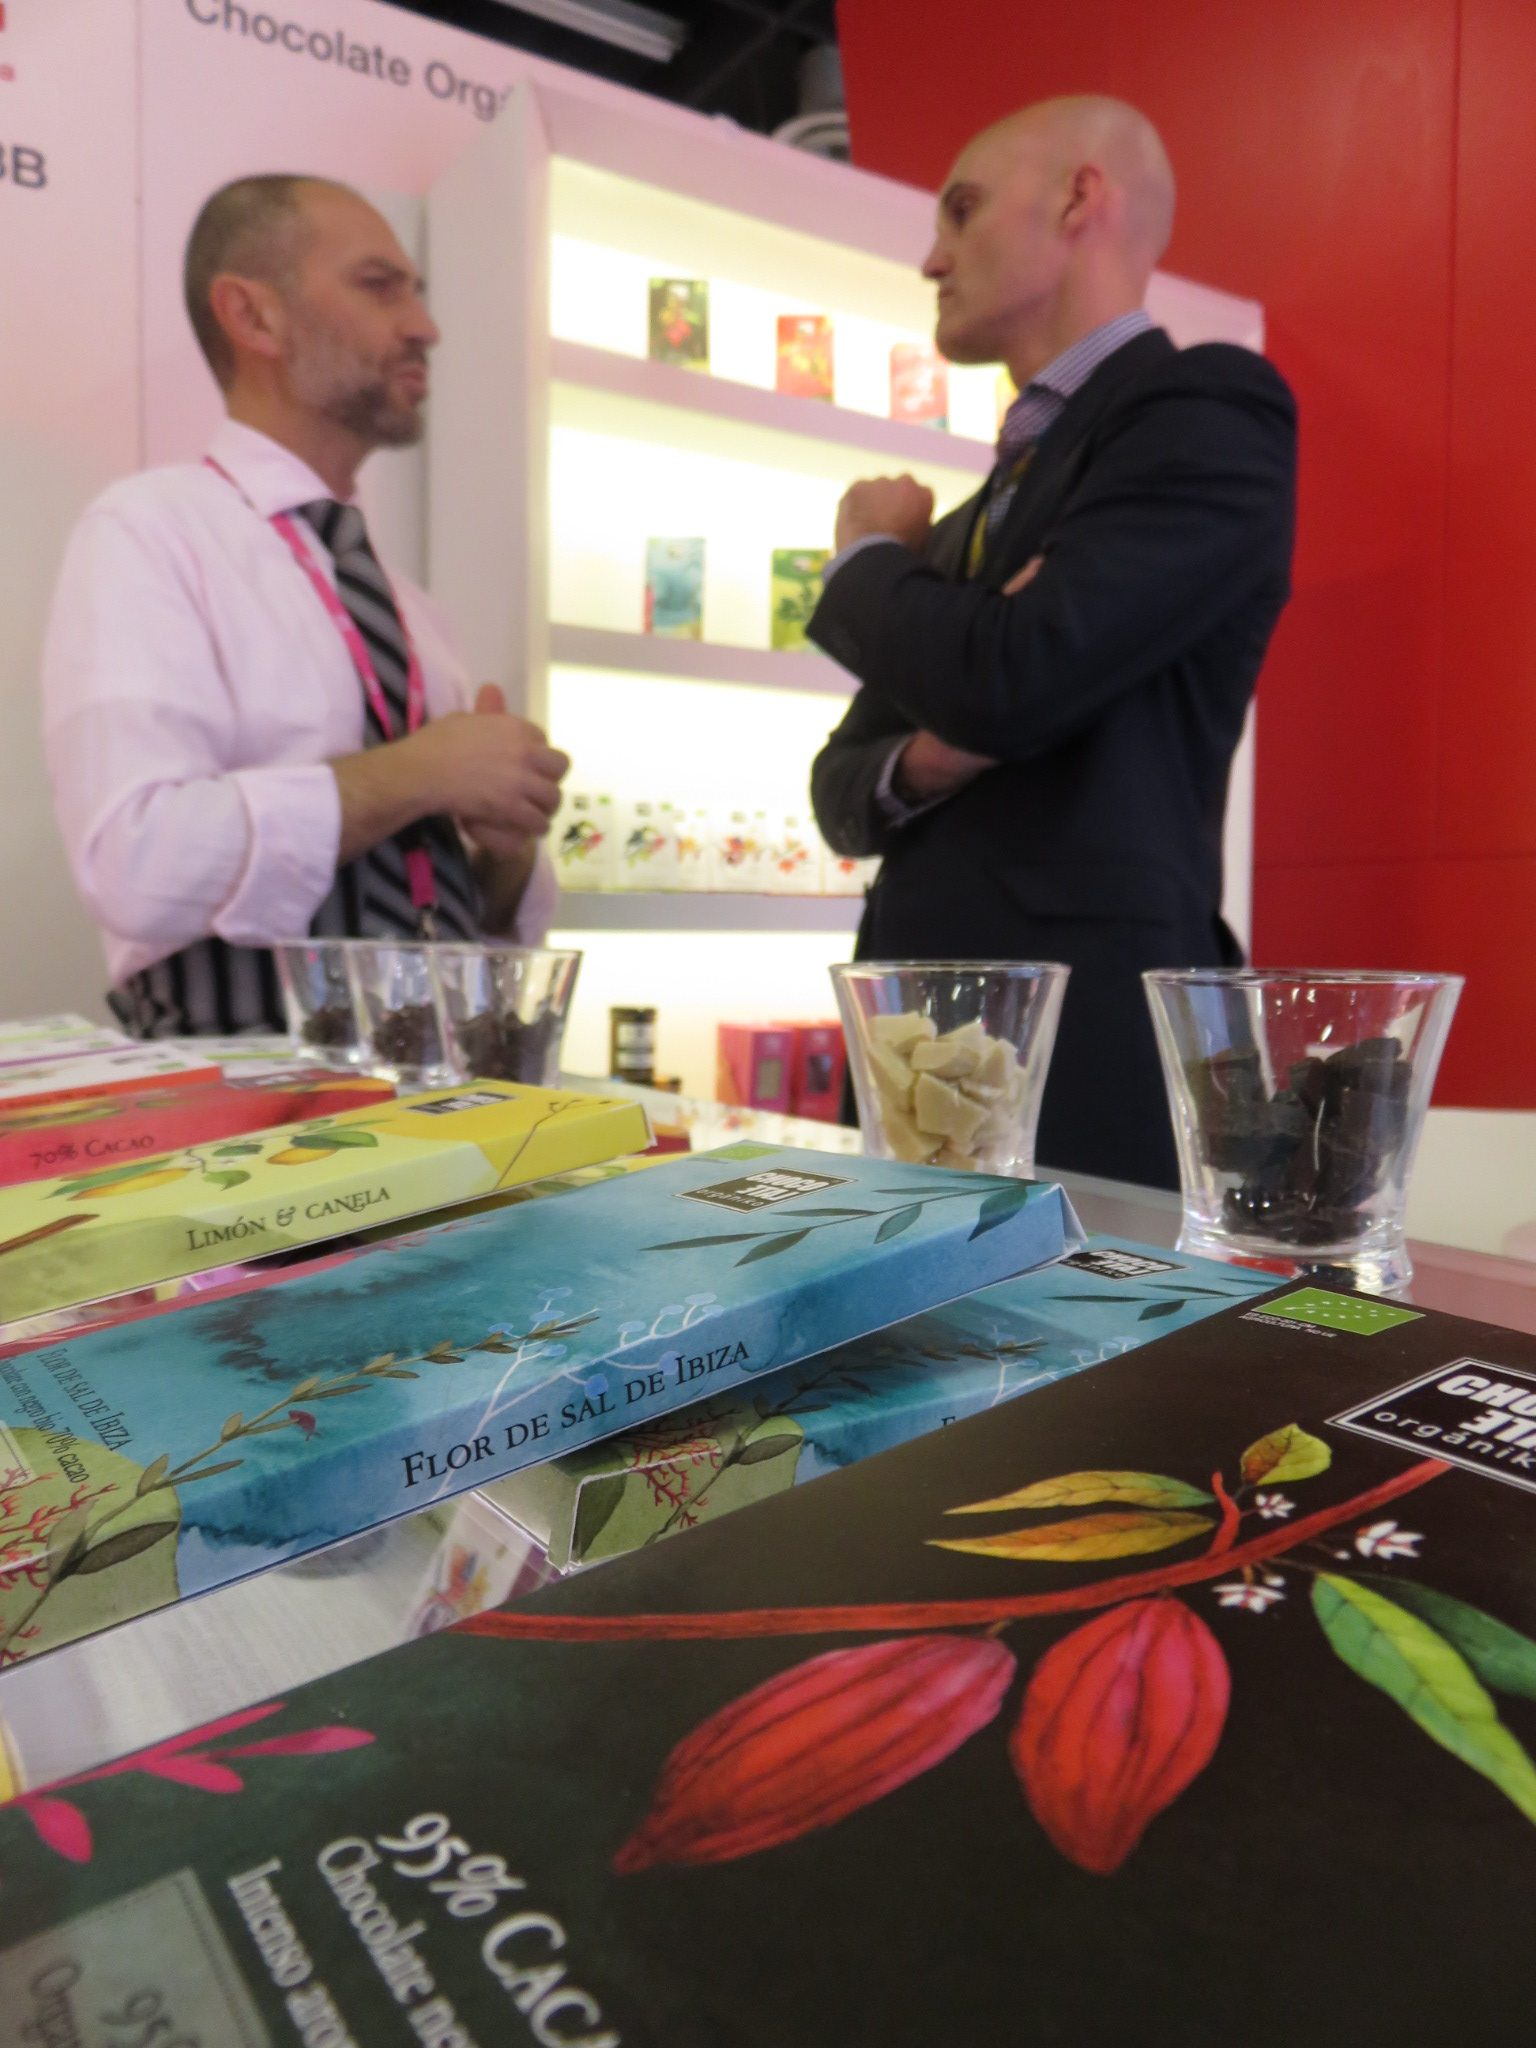 LoRUSSo at the Confectionery Fair in Cologne, Germany